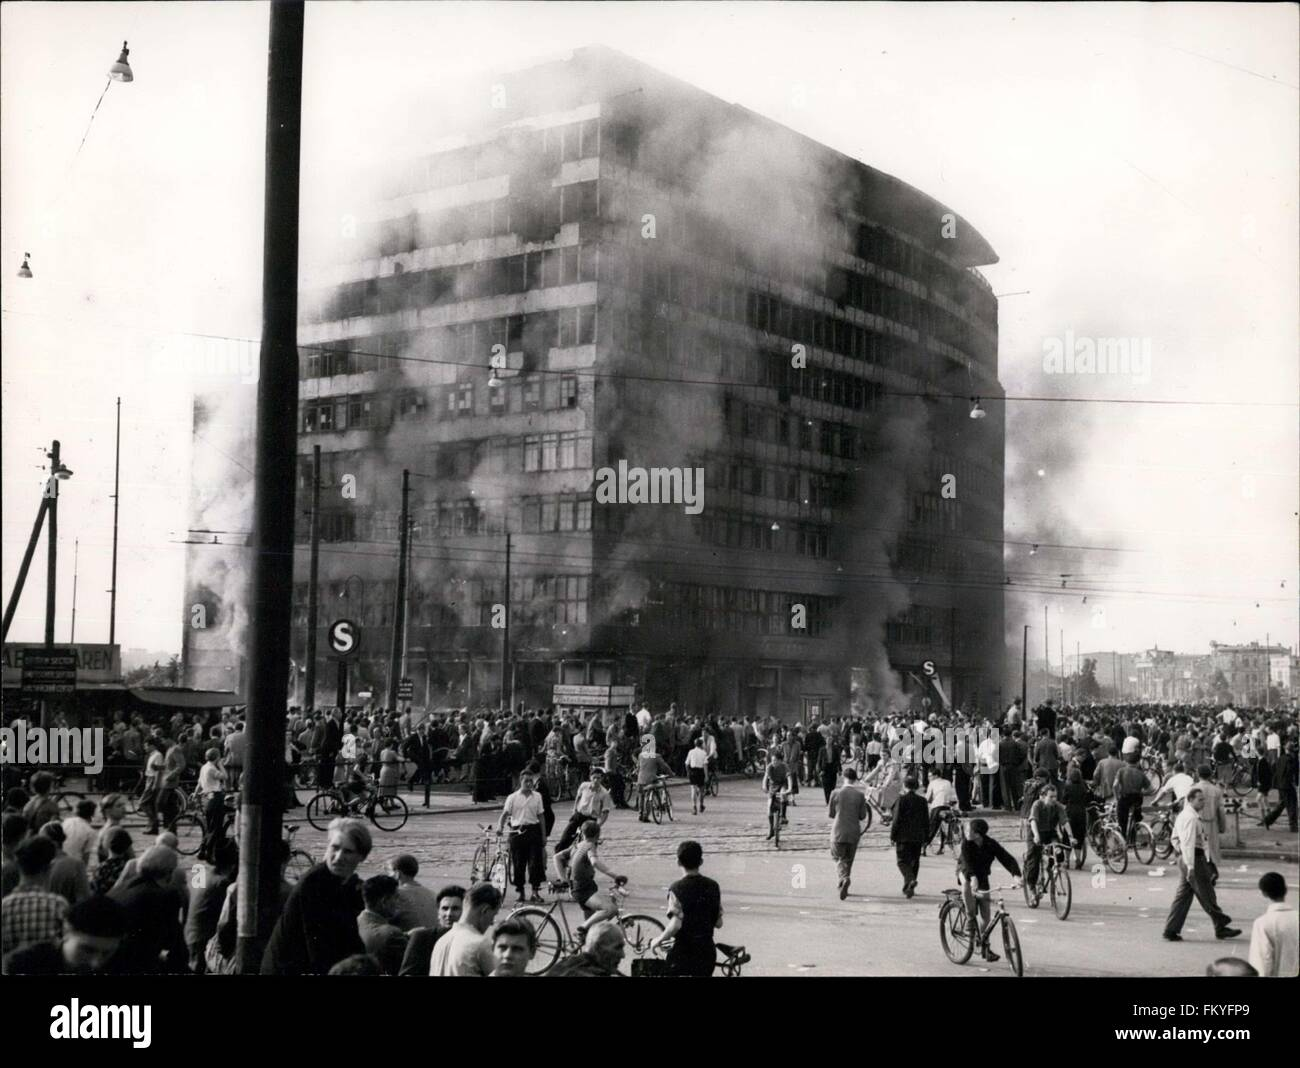 1953 - HO-Building in Eastern Berlin Burns own